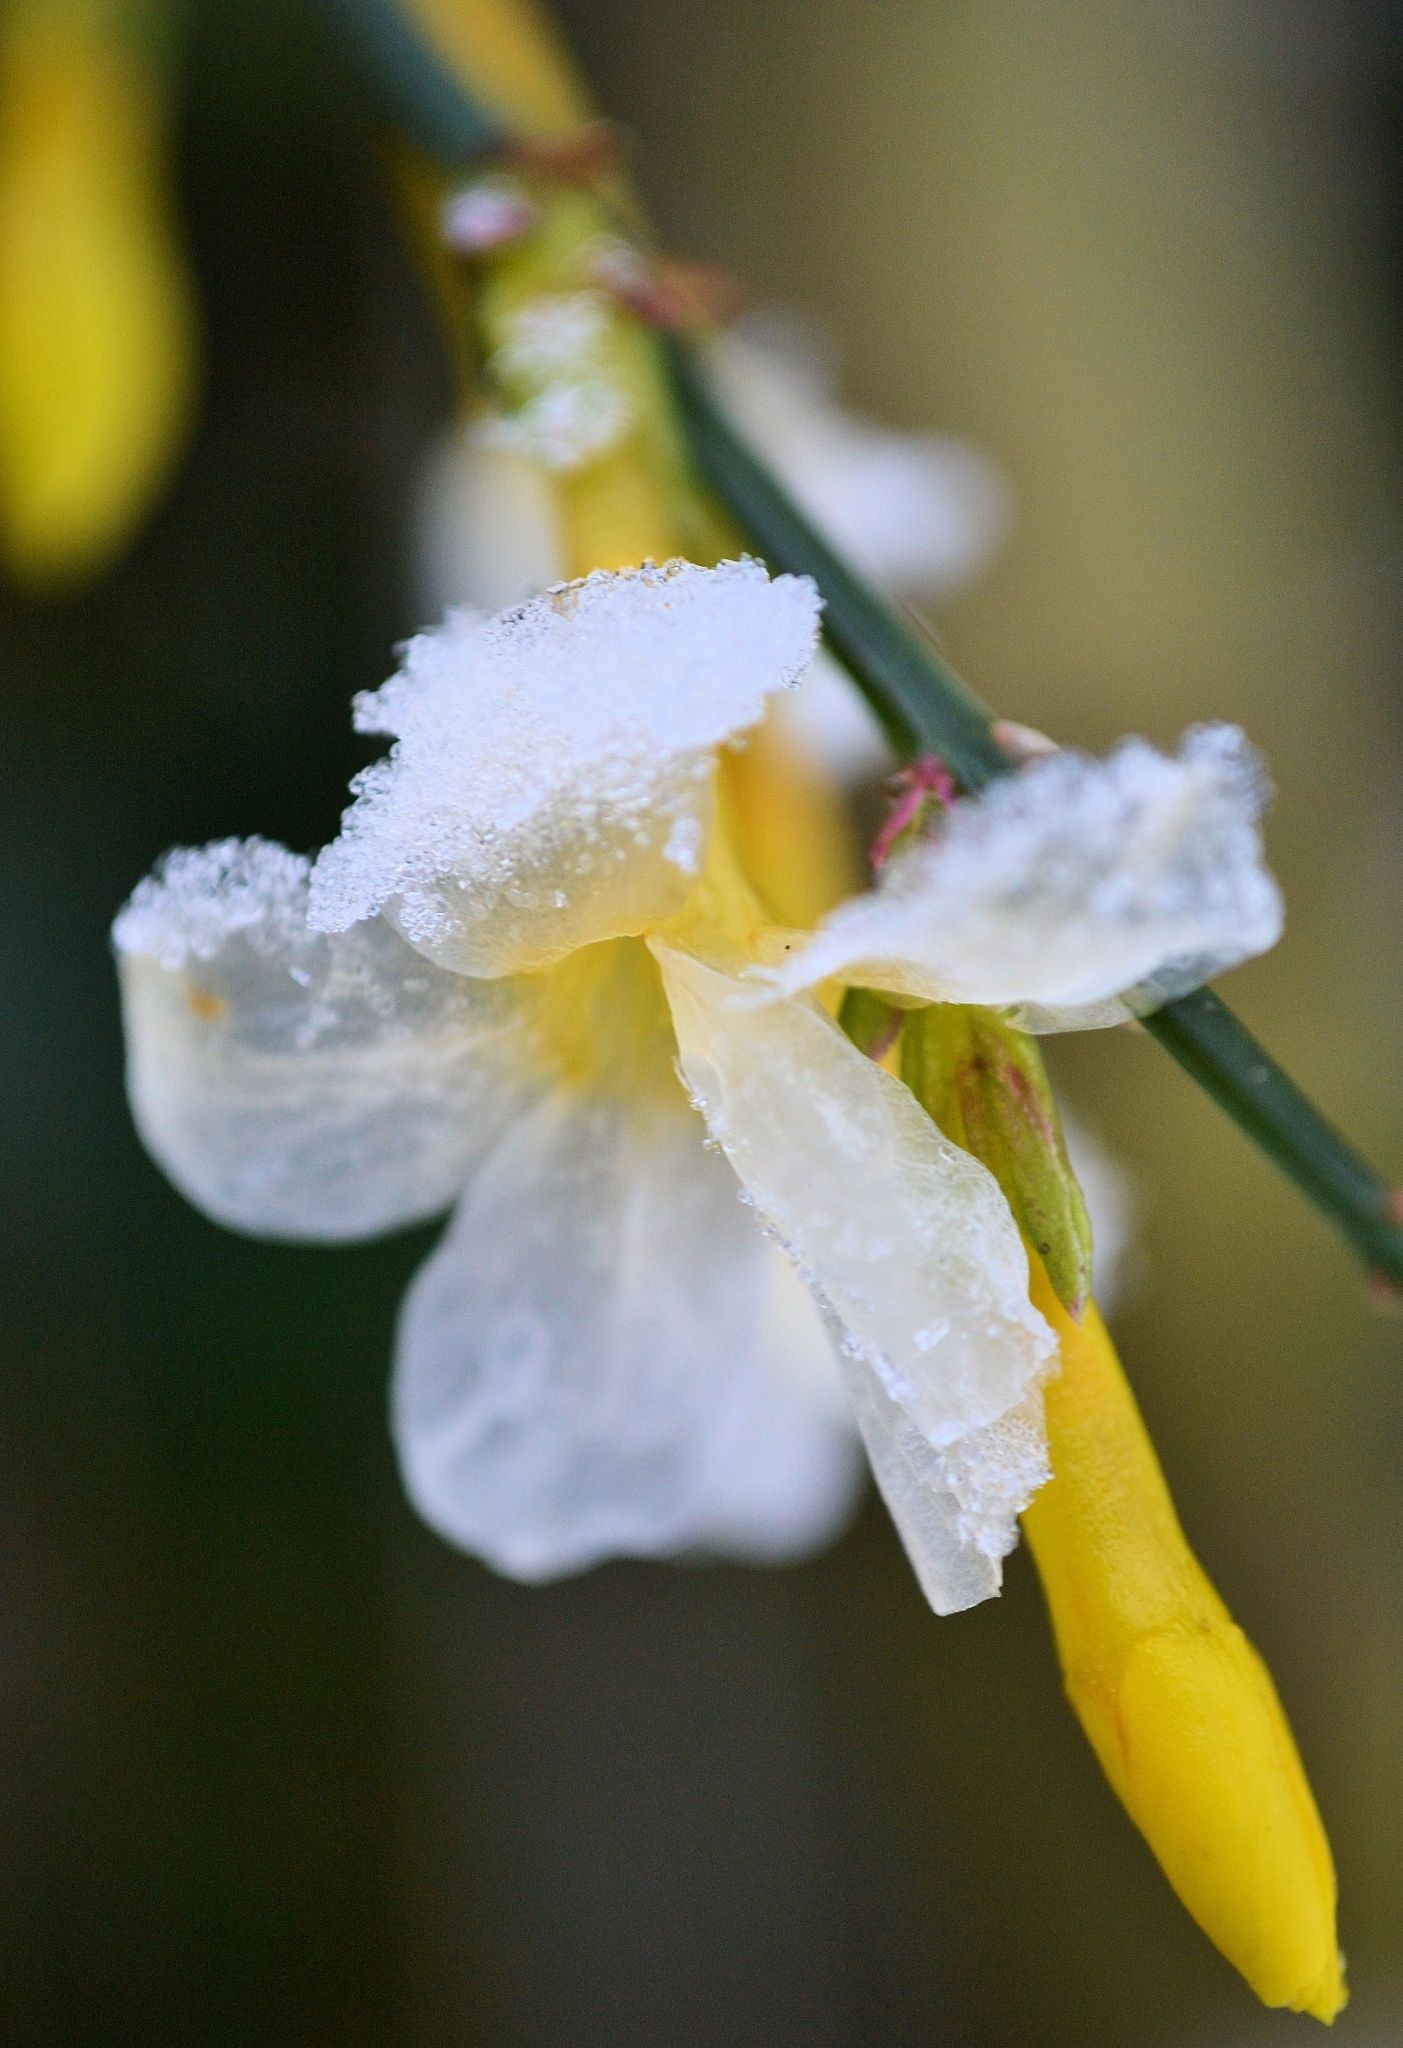 Iced winter jasmine by Heather Aplin on 500px